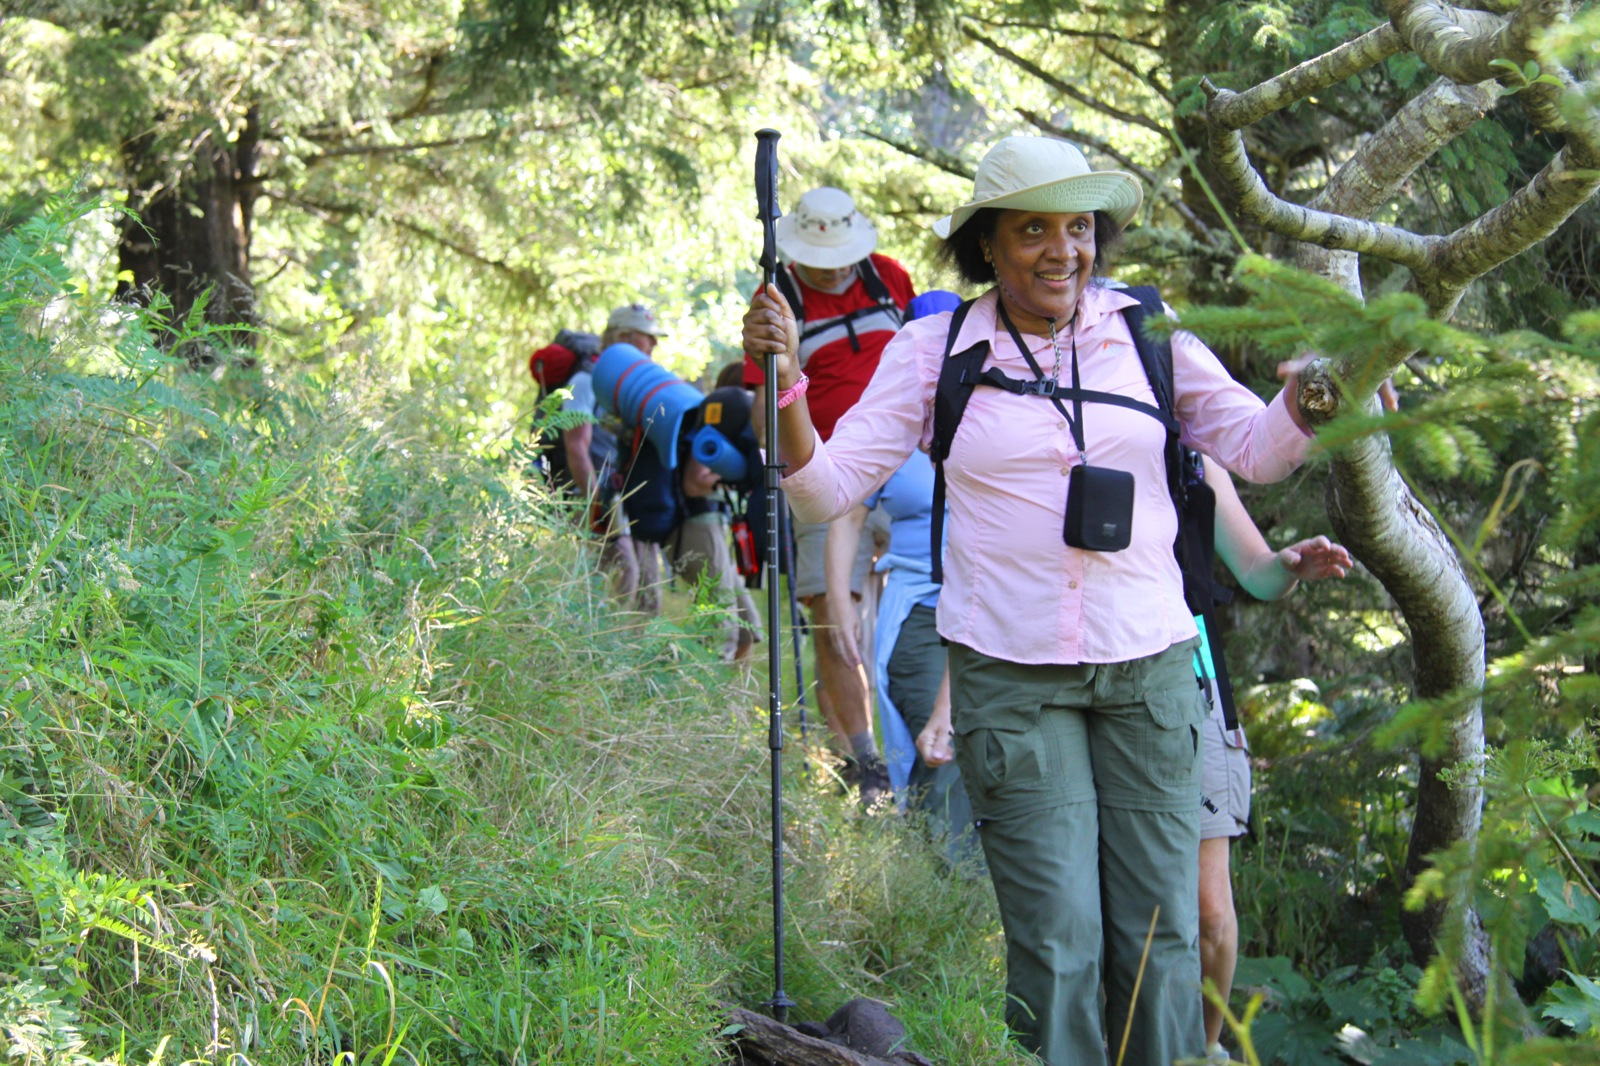 A group hikes in a line along a grassy, tree-lined hill in Olympic National Park.